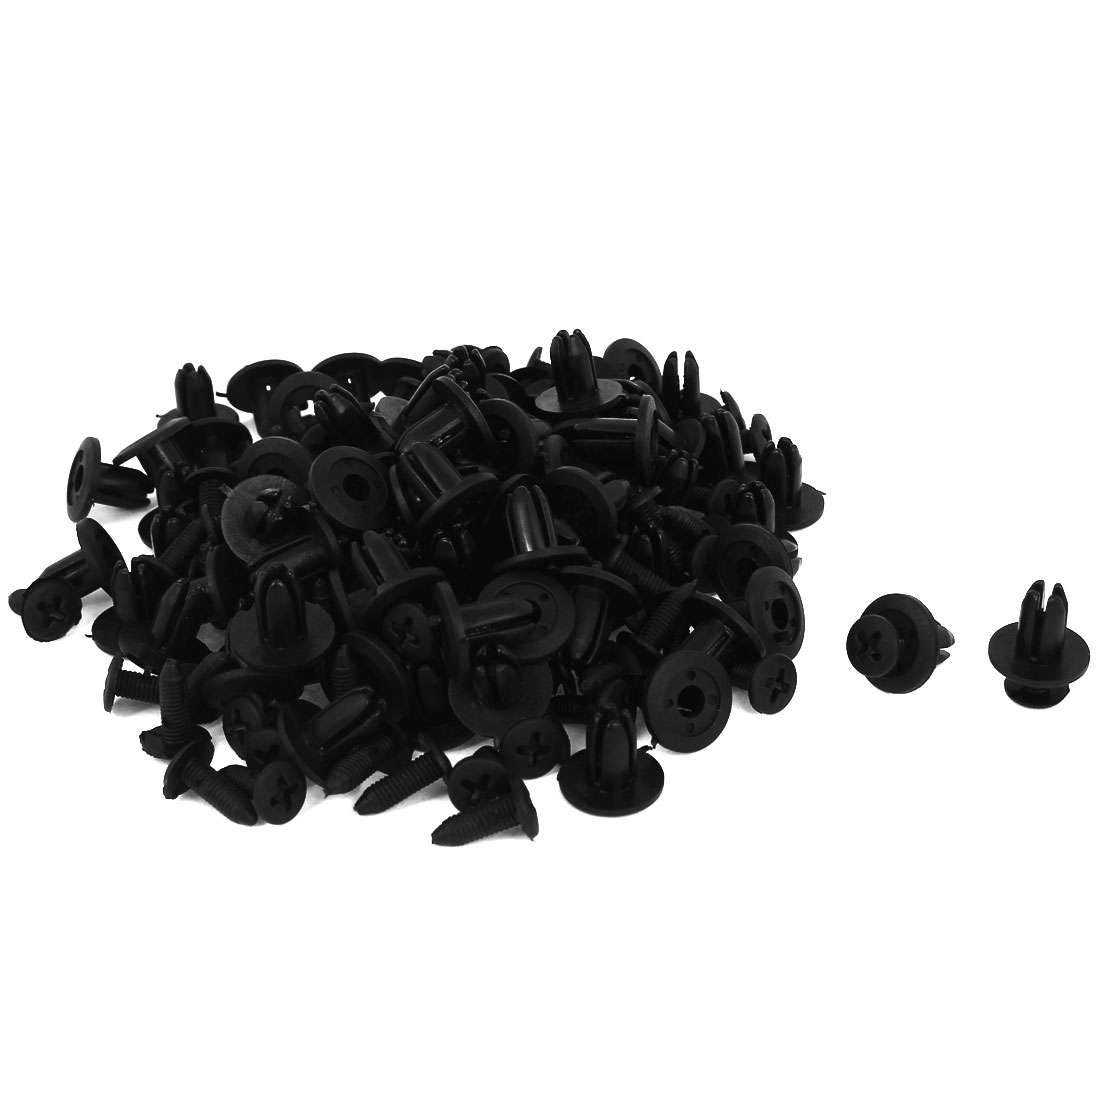 100 Pcs Black Plastic Rivet Trim Fastener Moulding Clips 7mm x 11mm x 15mm - image 1 of 1